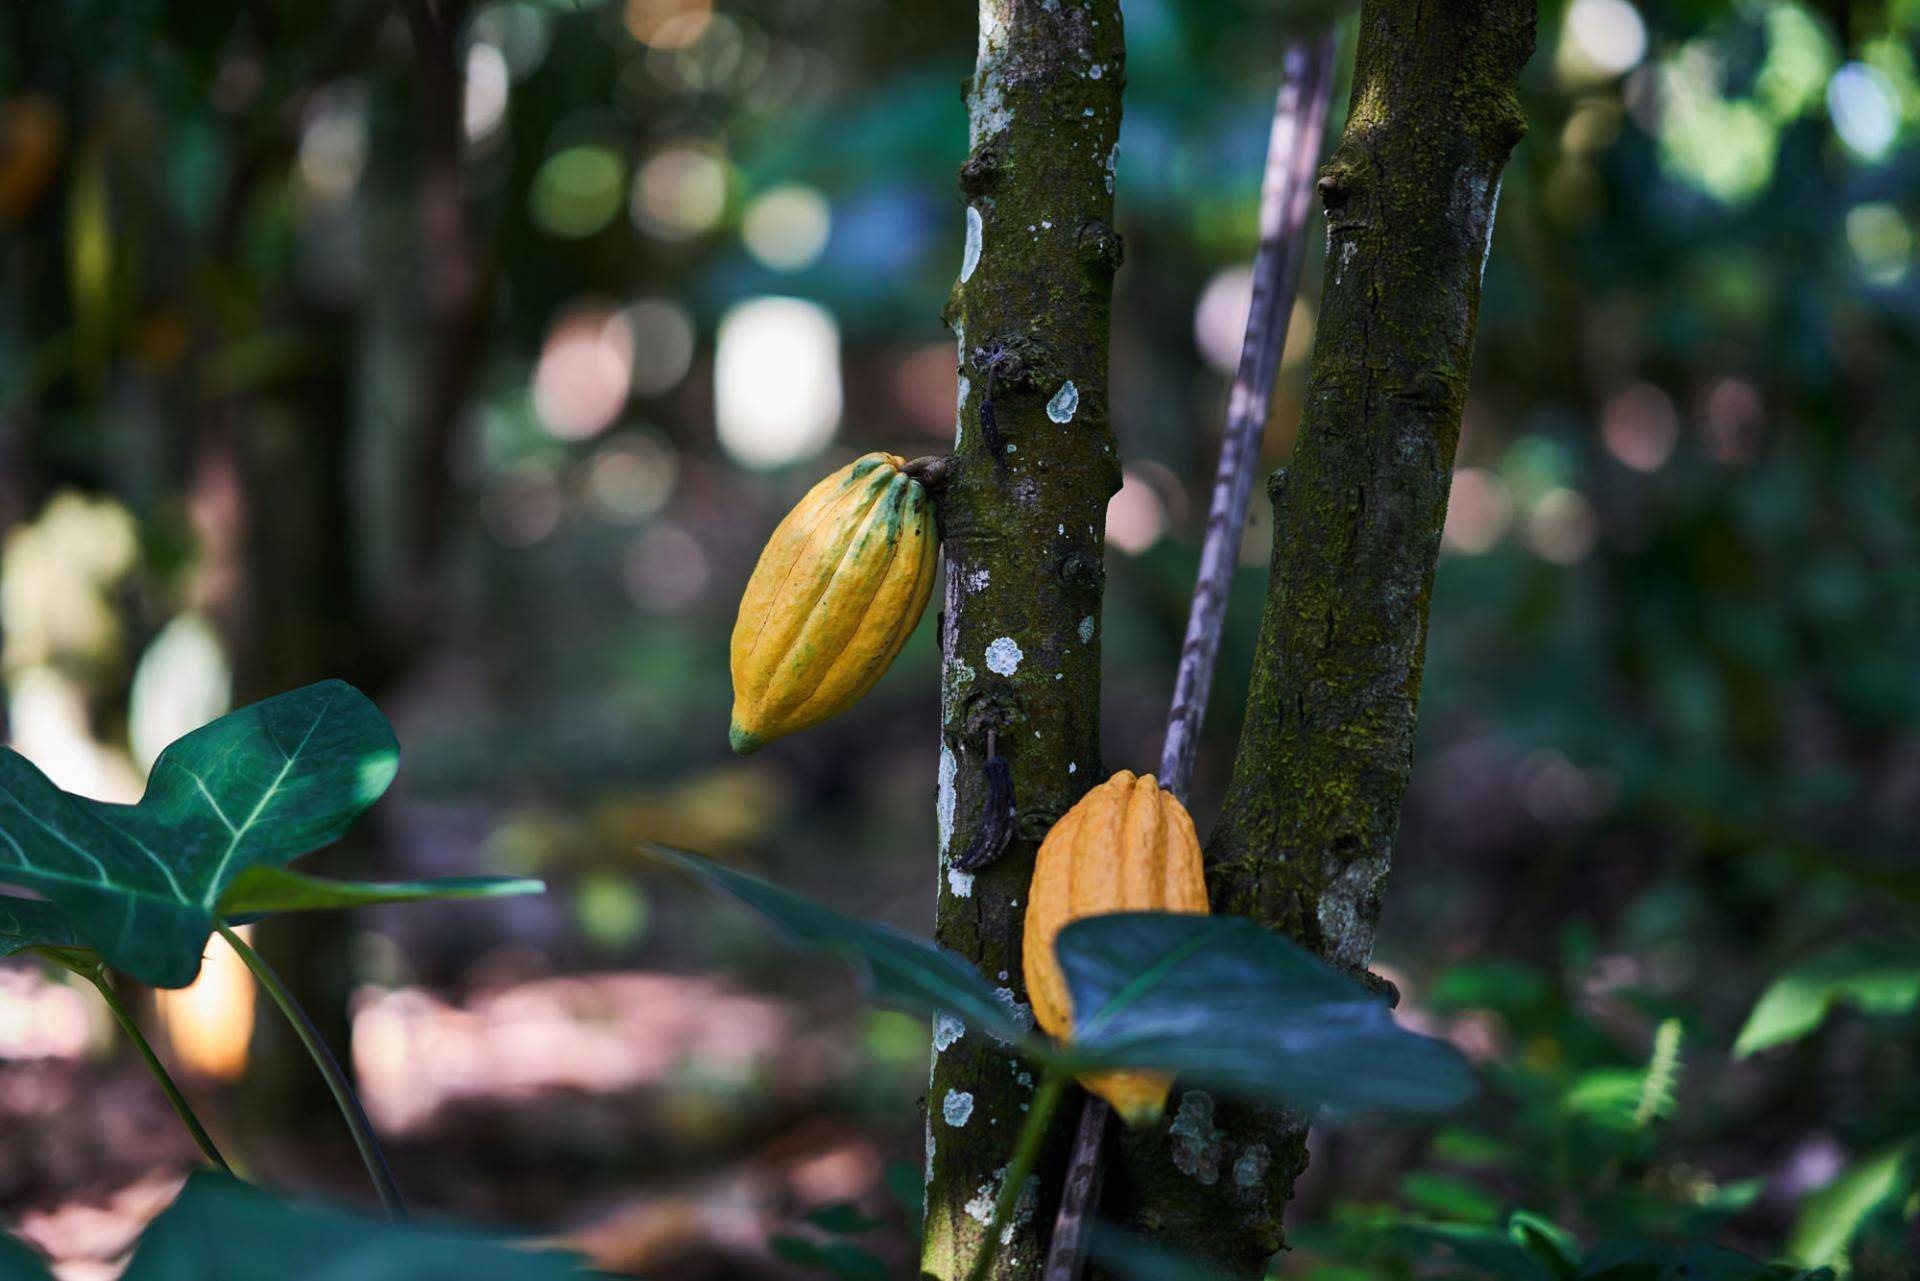 Chocolate companies to end deforestation and restore forests